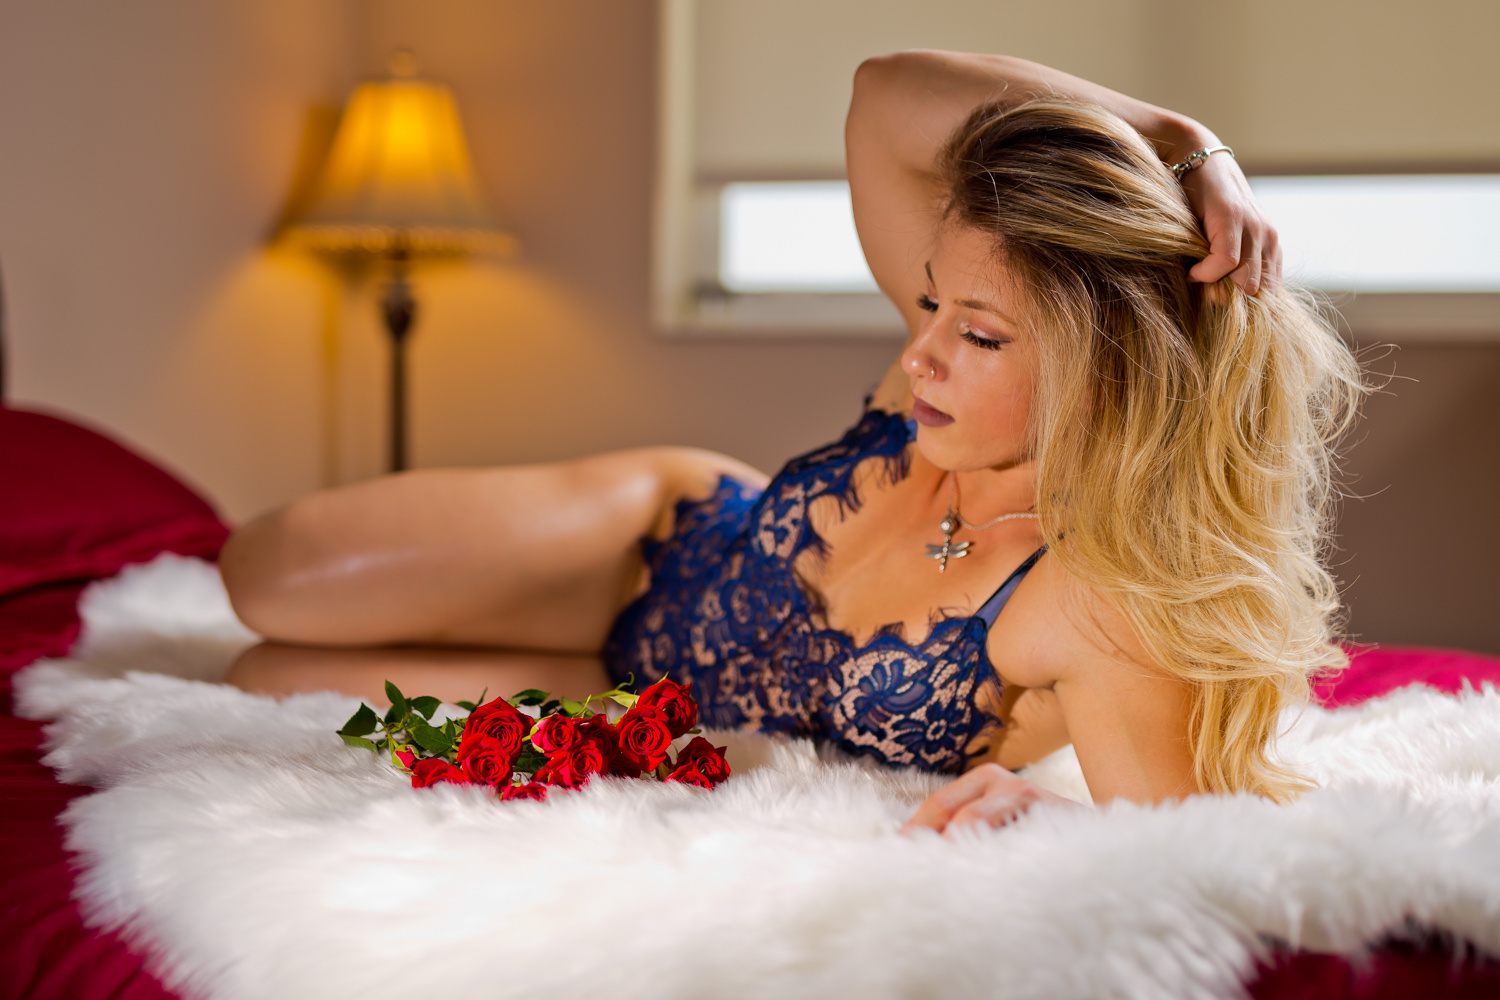 In bed with roses by John Miller